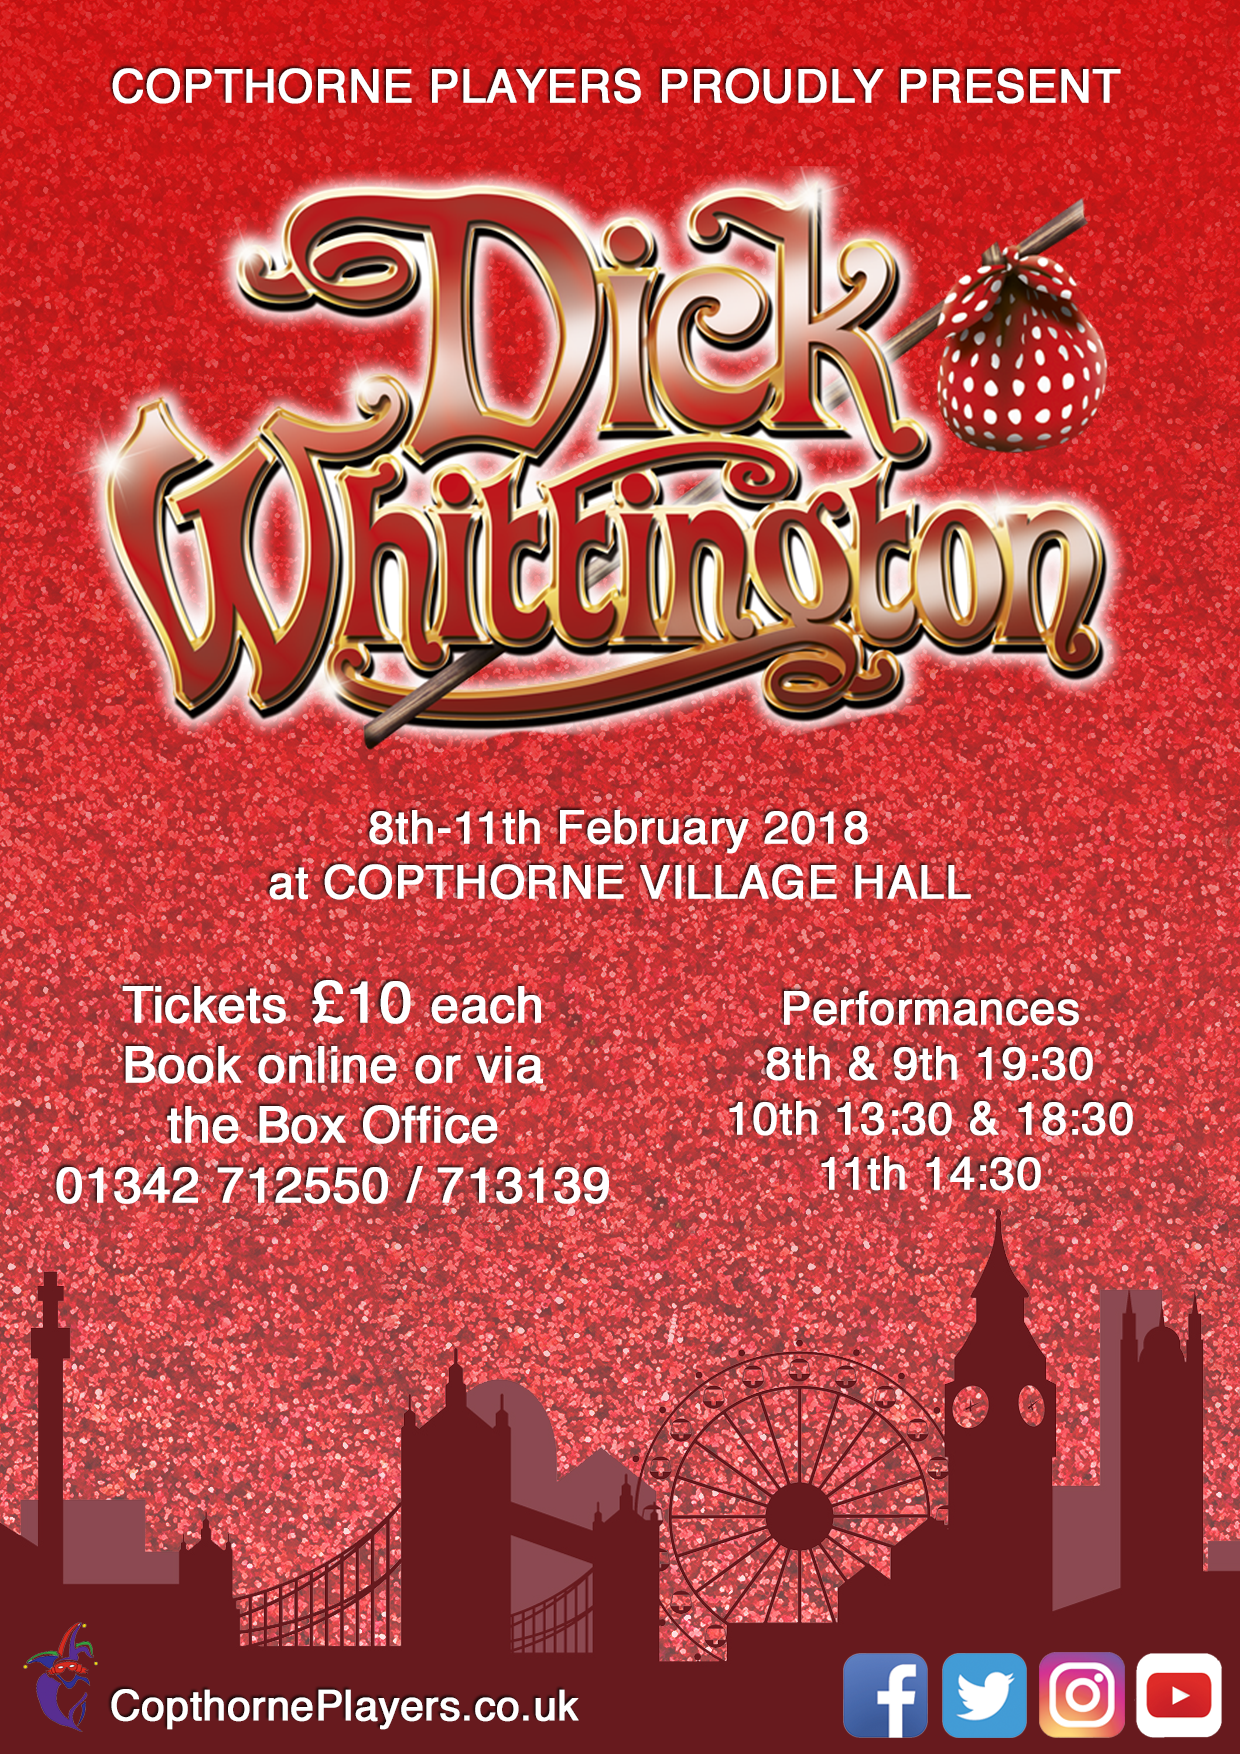 Dick Whittington Show Poster v2 FINAL.png